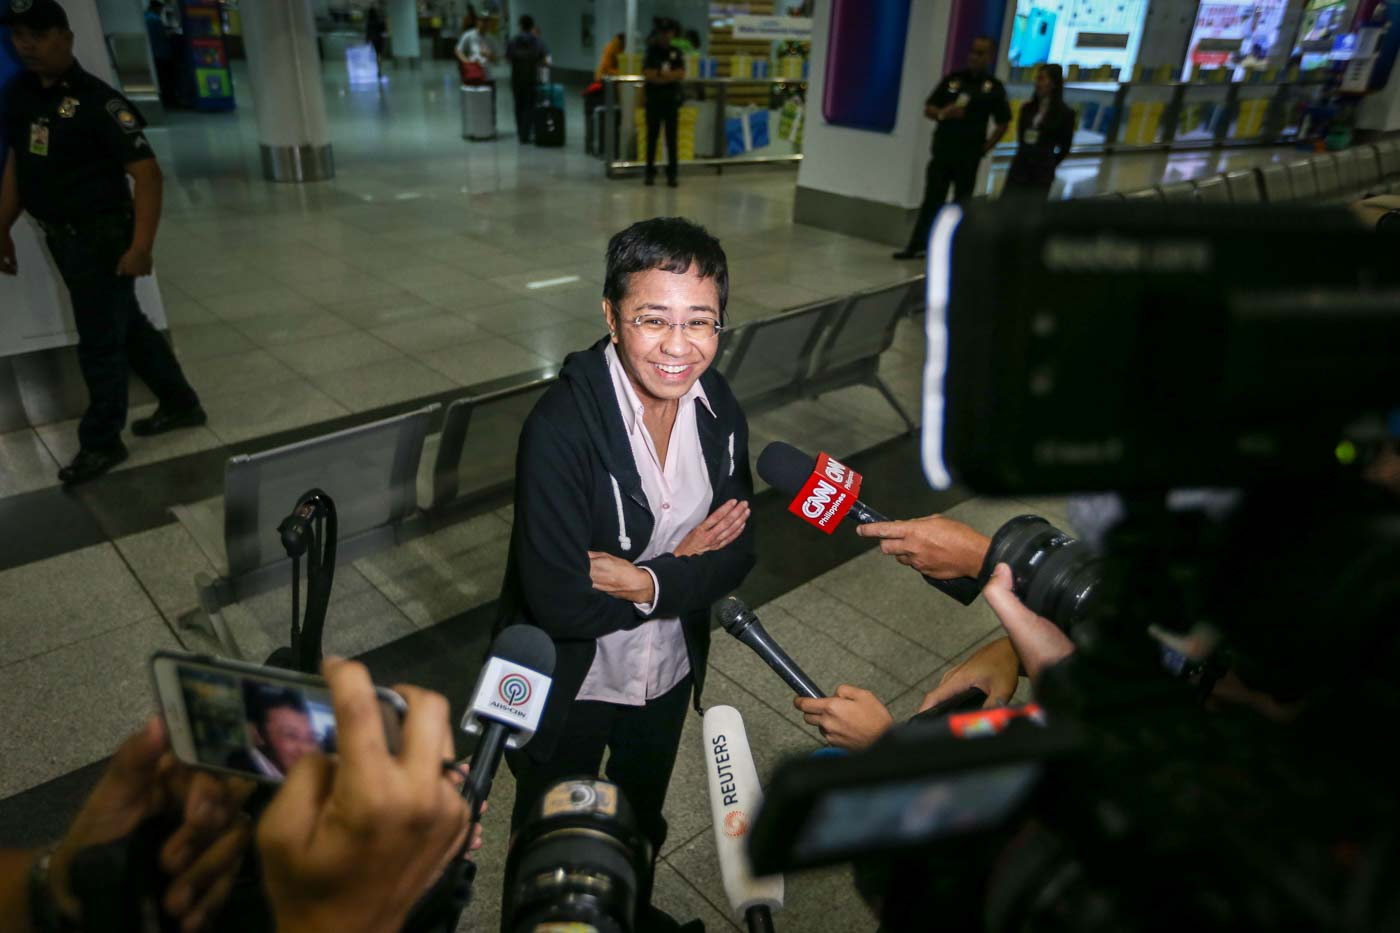 CASES. Rappler CEO Maria Ressa arrives at the NAIA Terminal 3 on December 2, 2018, a day before posting bail at the Pasig City Regional Trial Court for one of 5 tax cases filed by the Department of Justice. Photo by LeAnne Jazul/Rappler